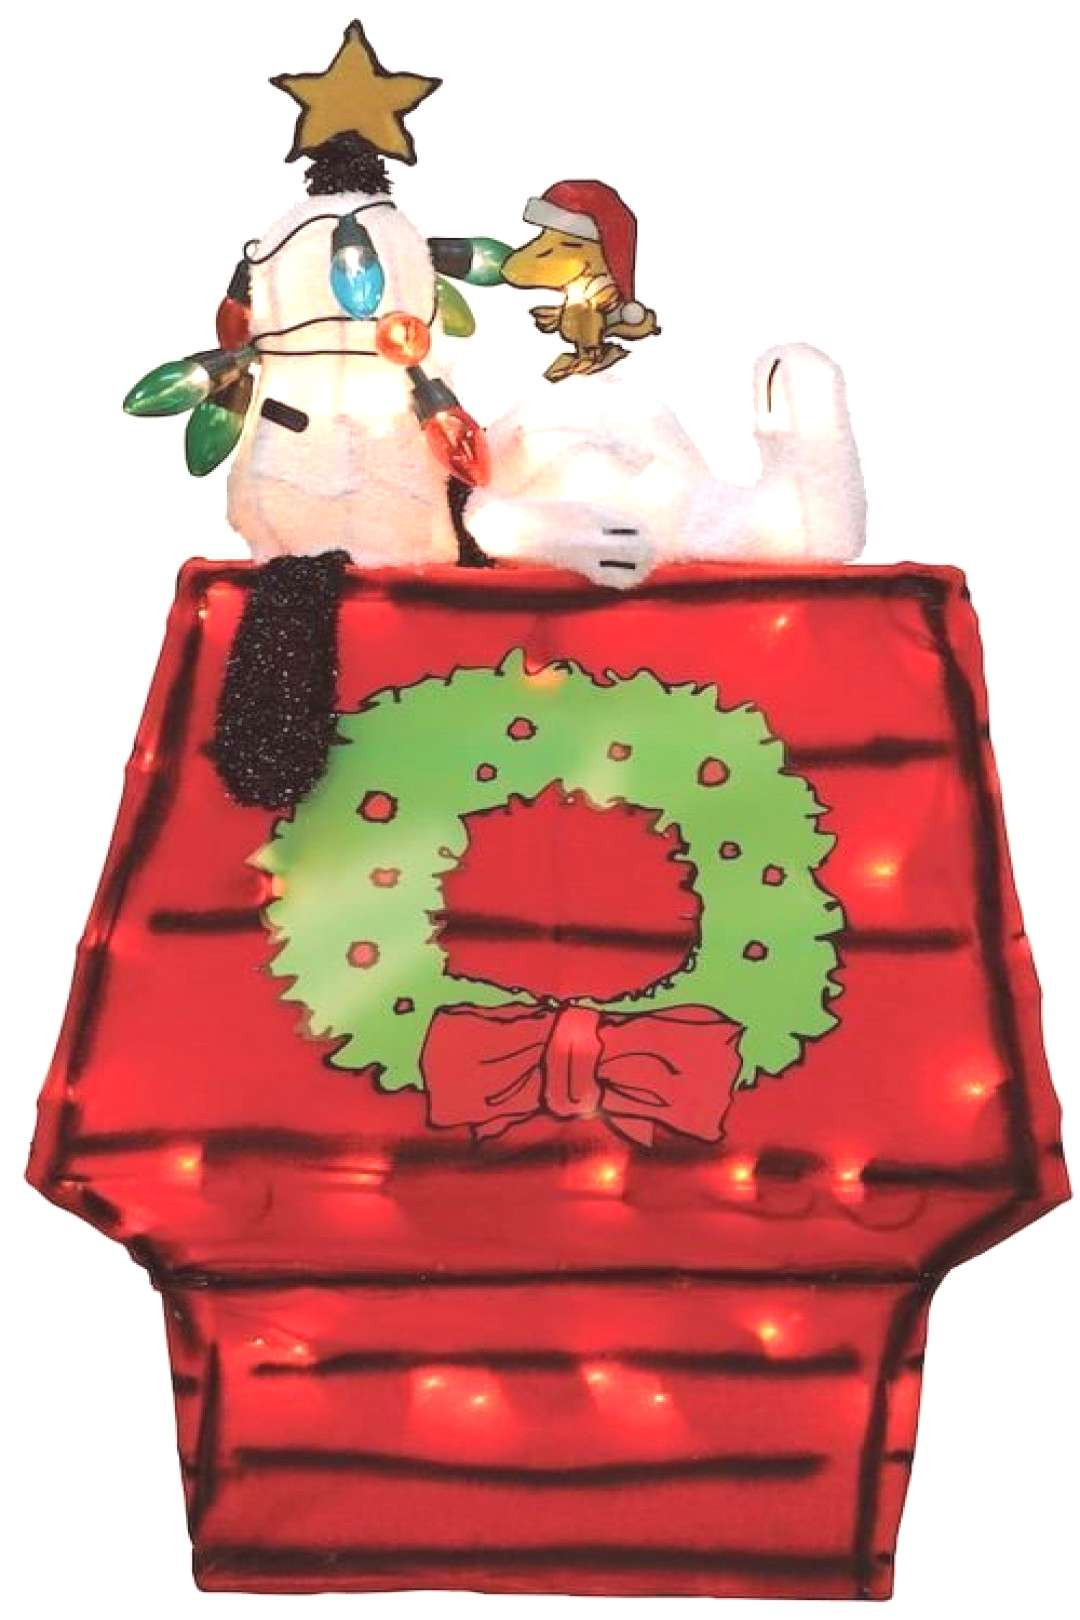 Peanuts Snoopy on Doghouse 26-in. Pre-Lit Christmas Decor - Indoor and OutdoorCl... Peanuts Snoopy